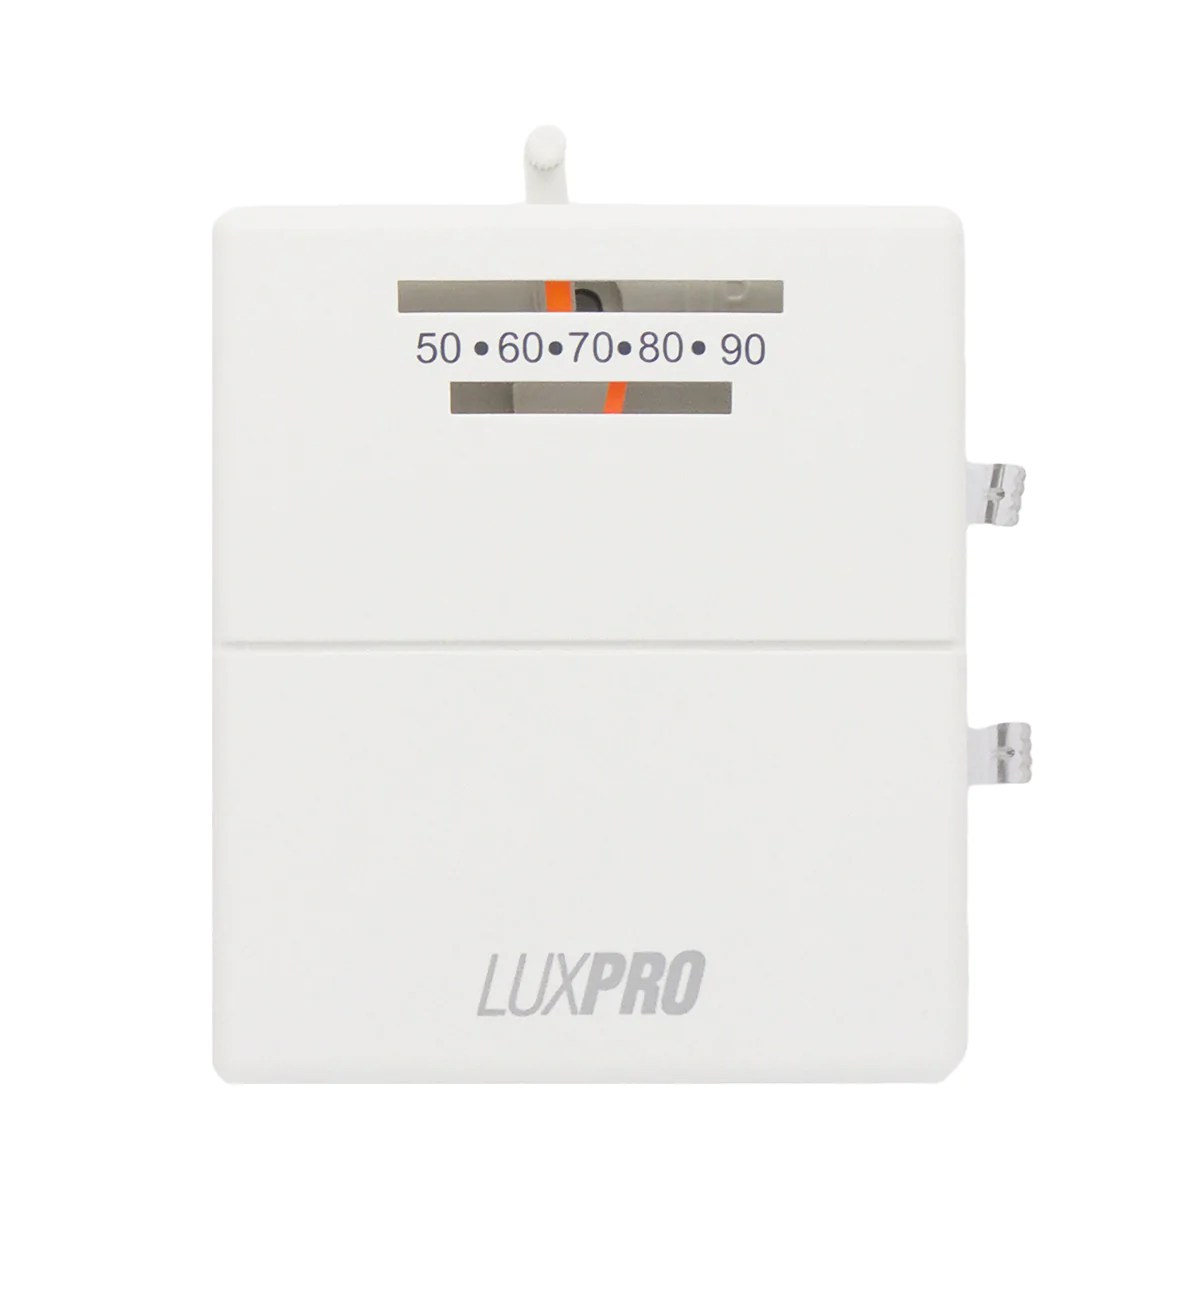 small resolution of luxpro psm40sa mechanical snap action 2 wire heat only thermostat lennox thermostat wiring diagram luxpro thermostat 2wire wiring diagram